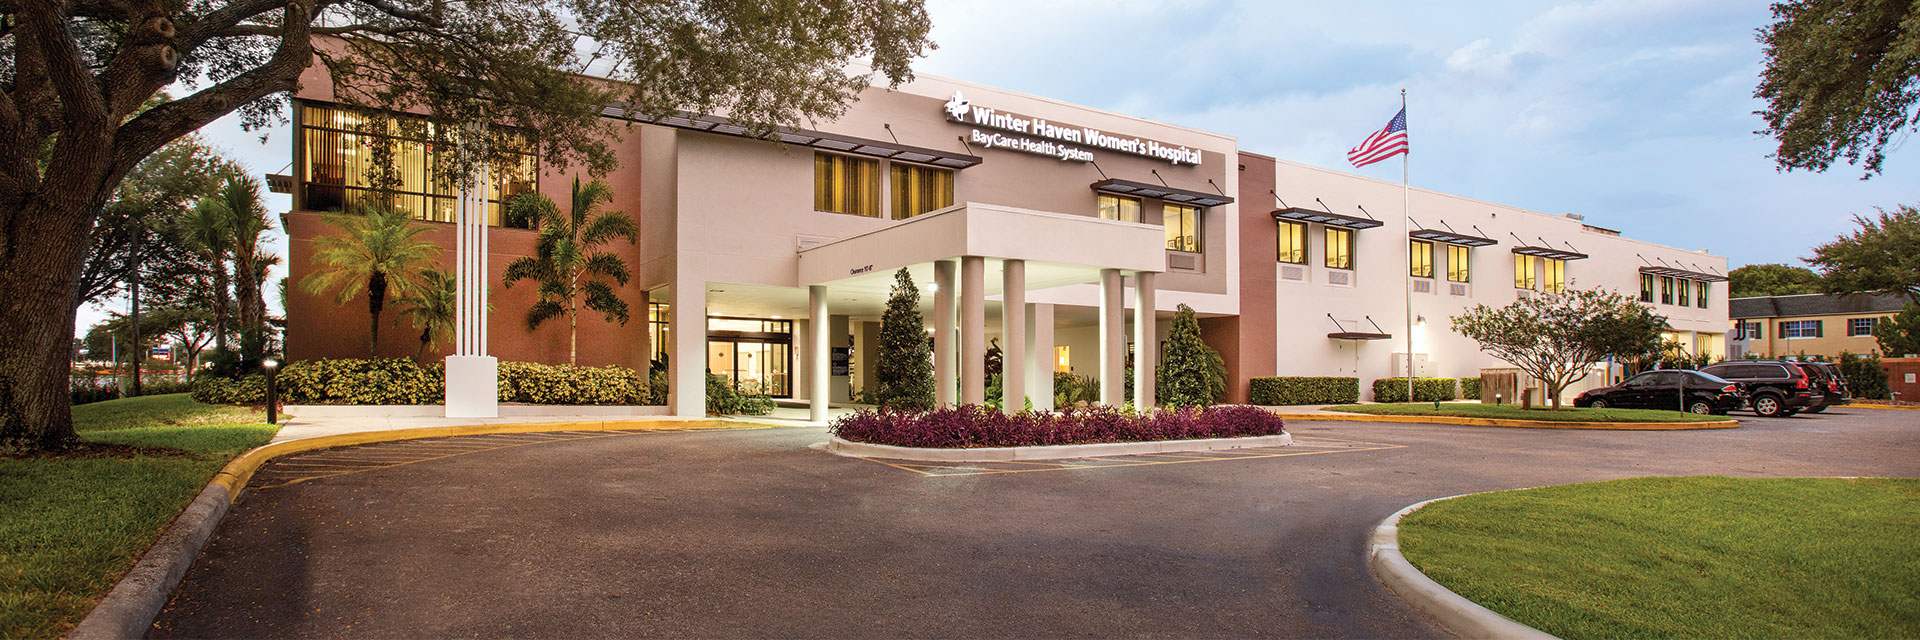 Winter Haven Women's Hospital main entrance in Winter Haven